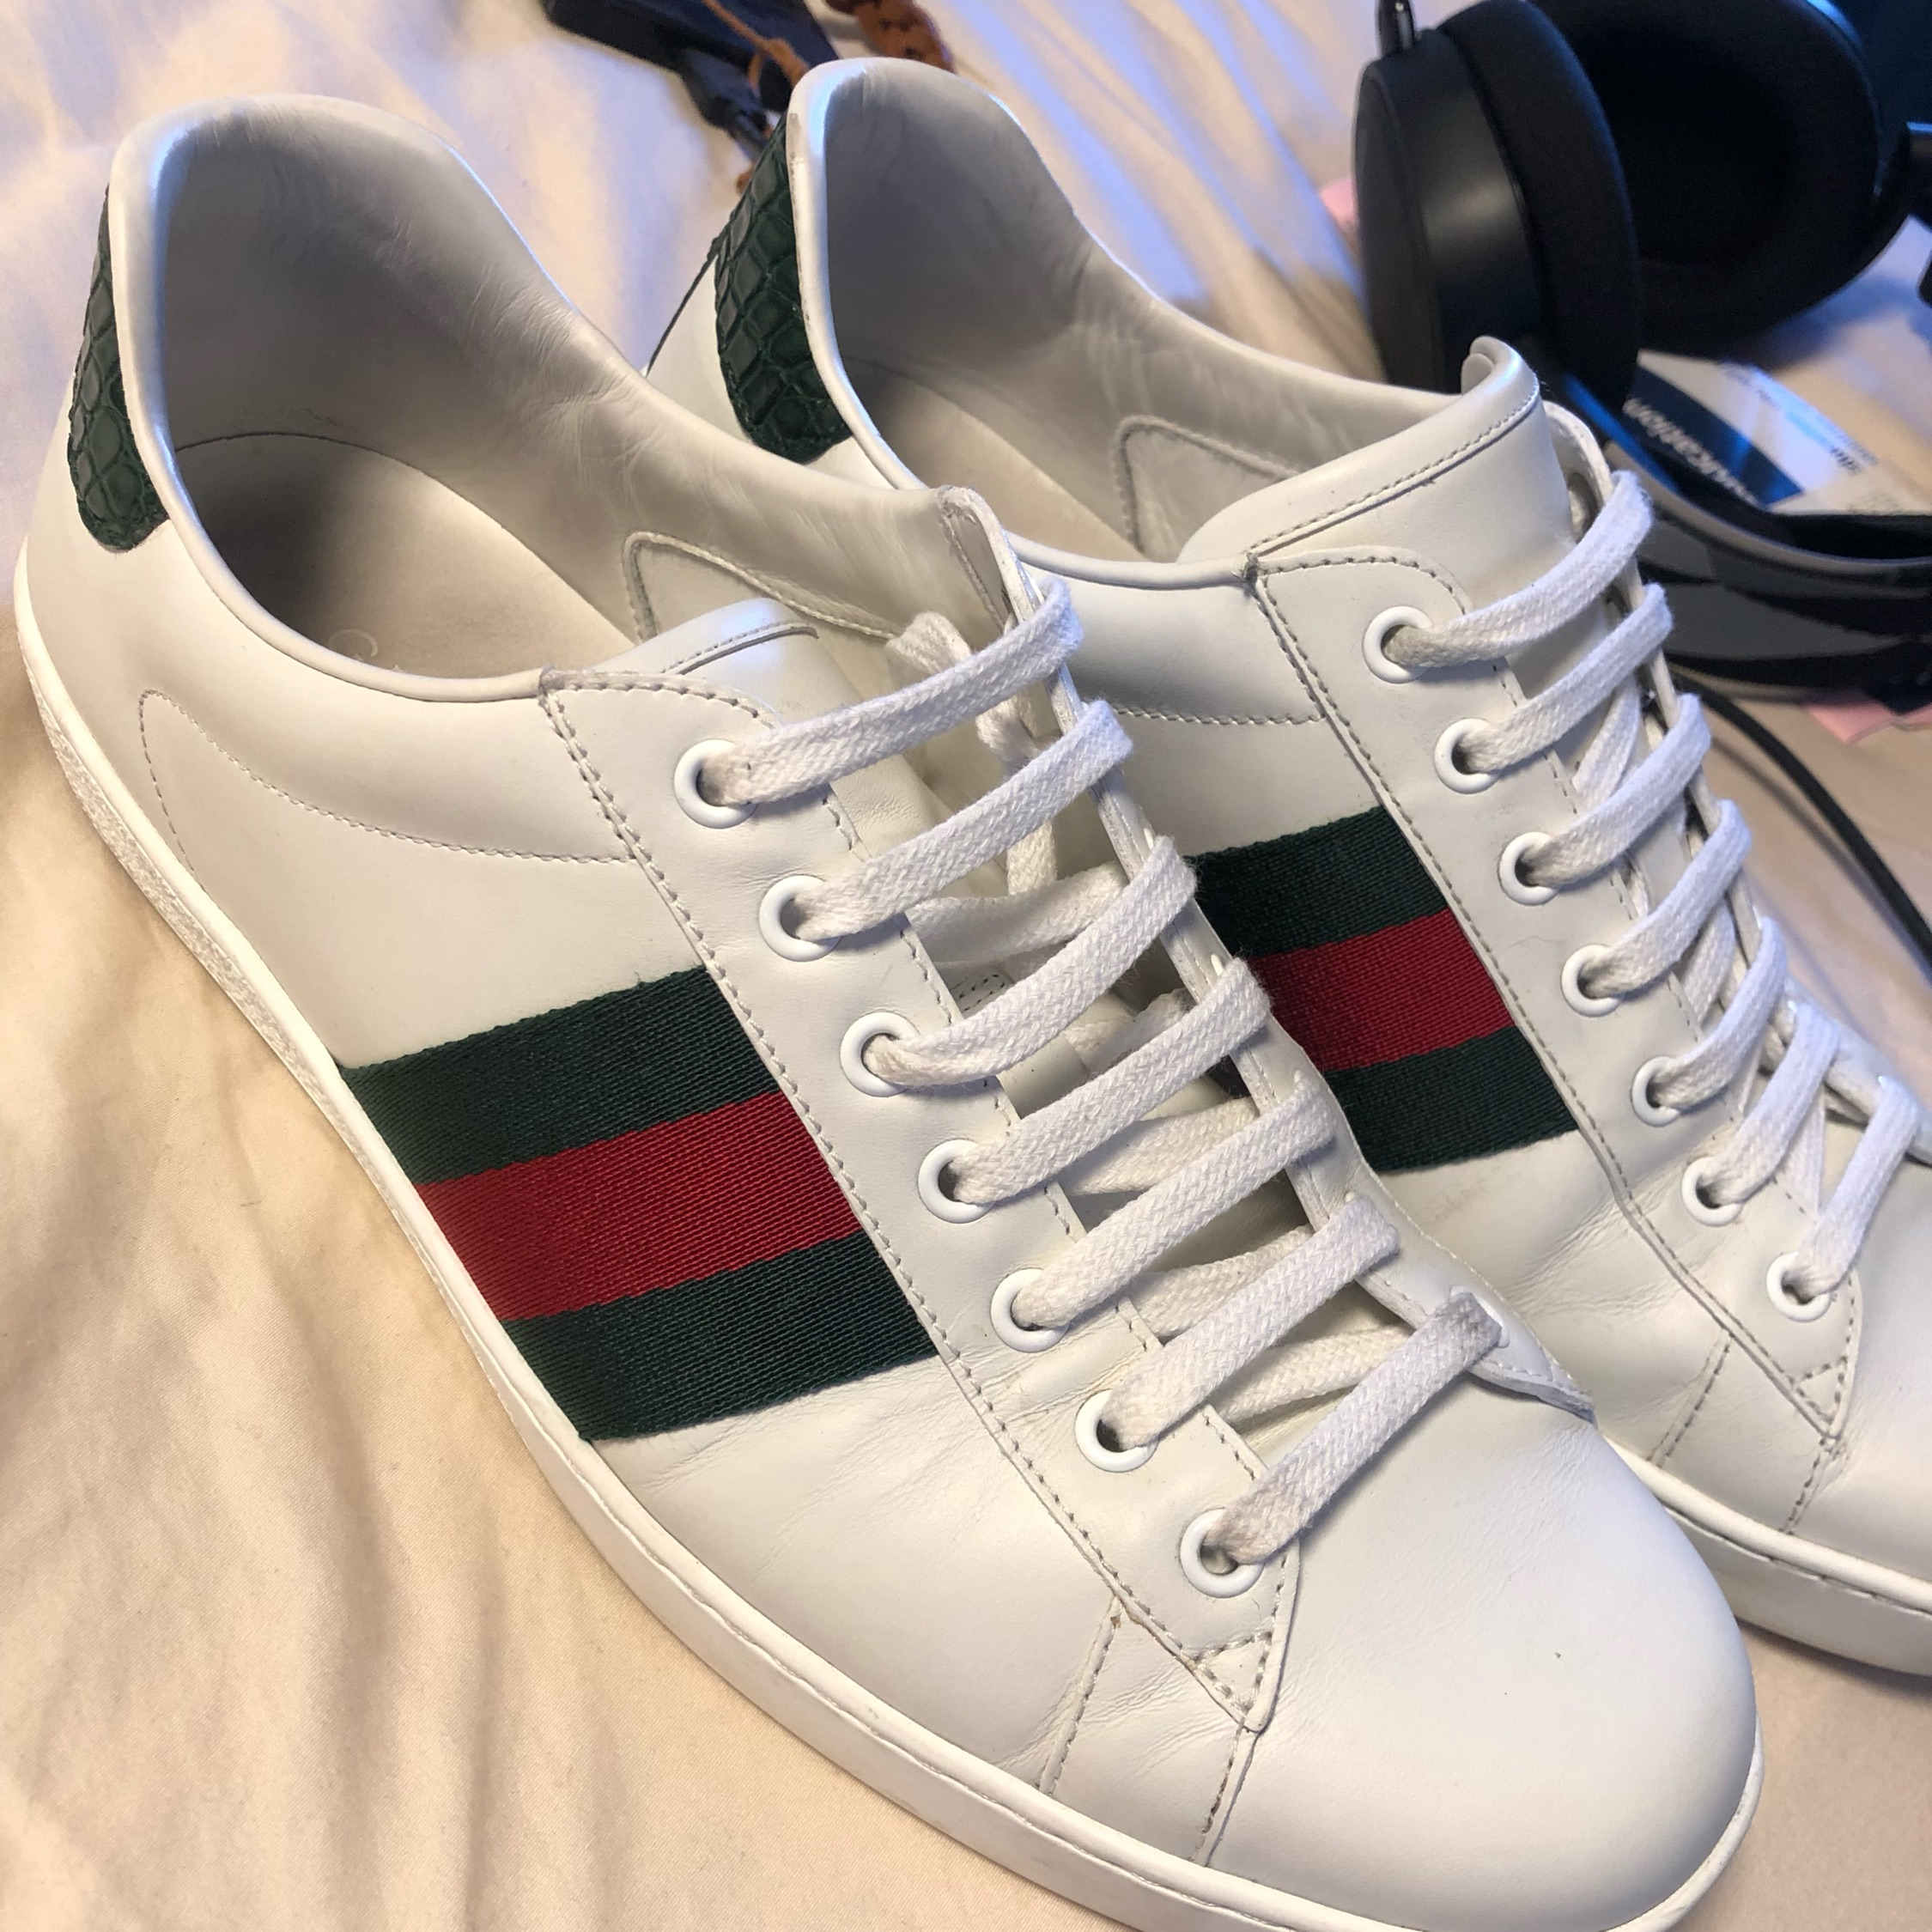 Image result for Gucci shoes